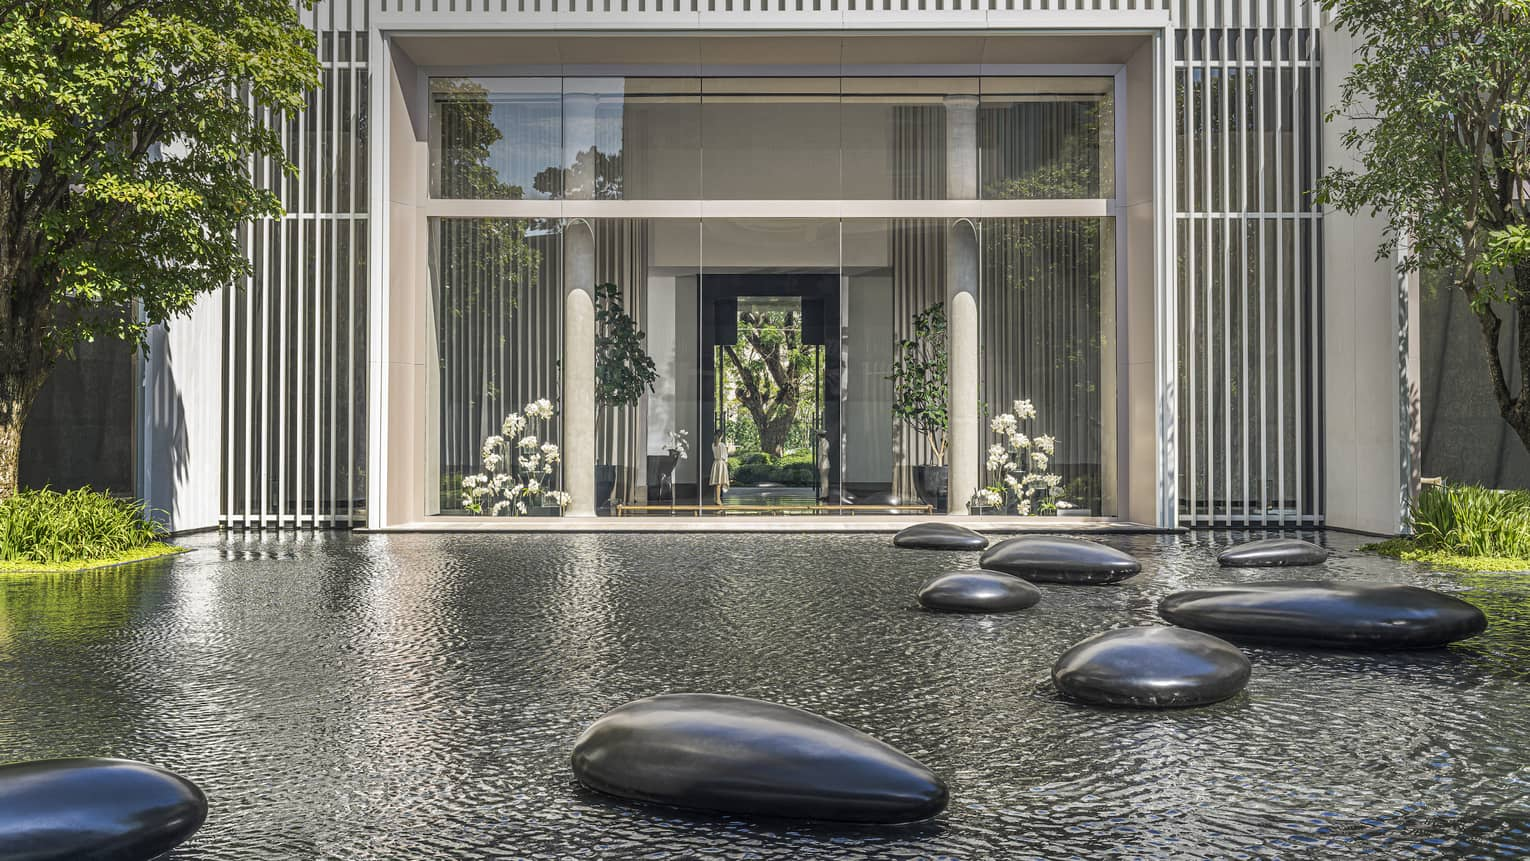 Calm pond in front of hotel with large polished stones scattered throughout